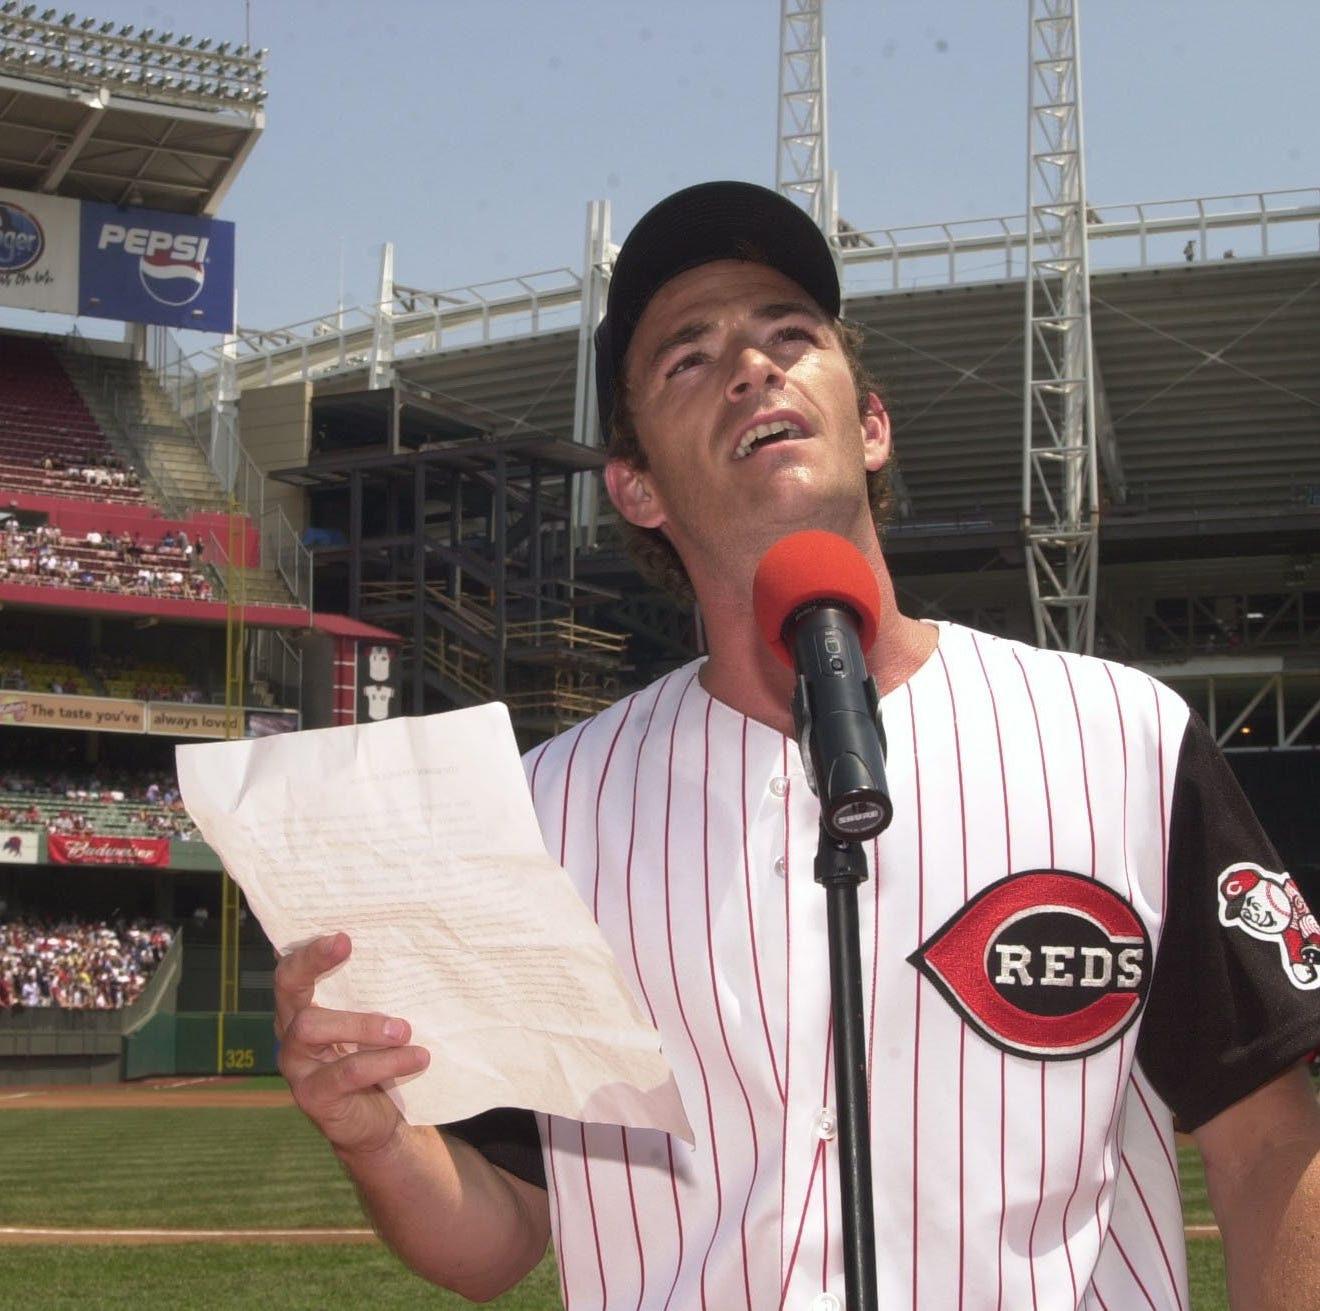 Luke Perry remembered Cincinnati Reds owner Marge Schott in 2014 - 10 years after she died